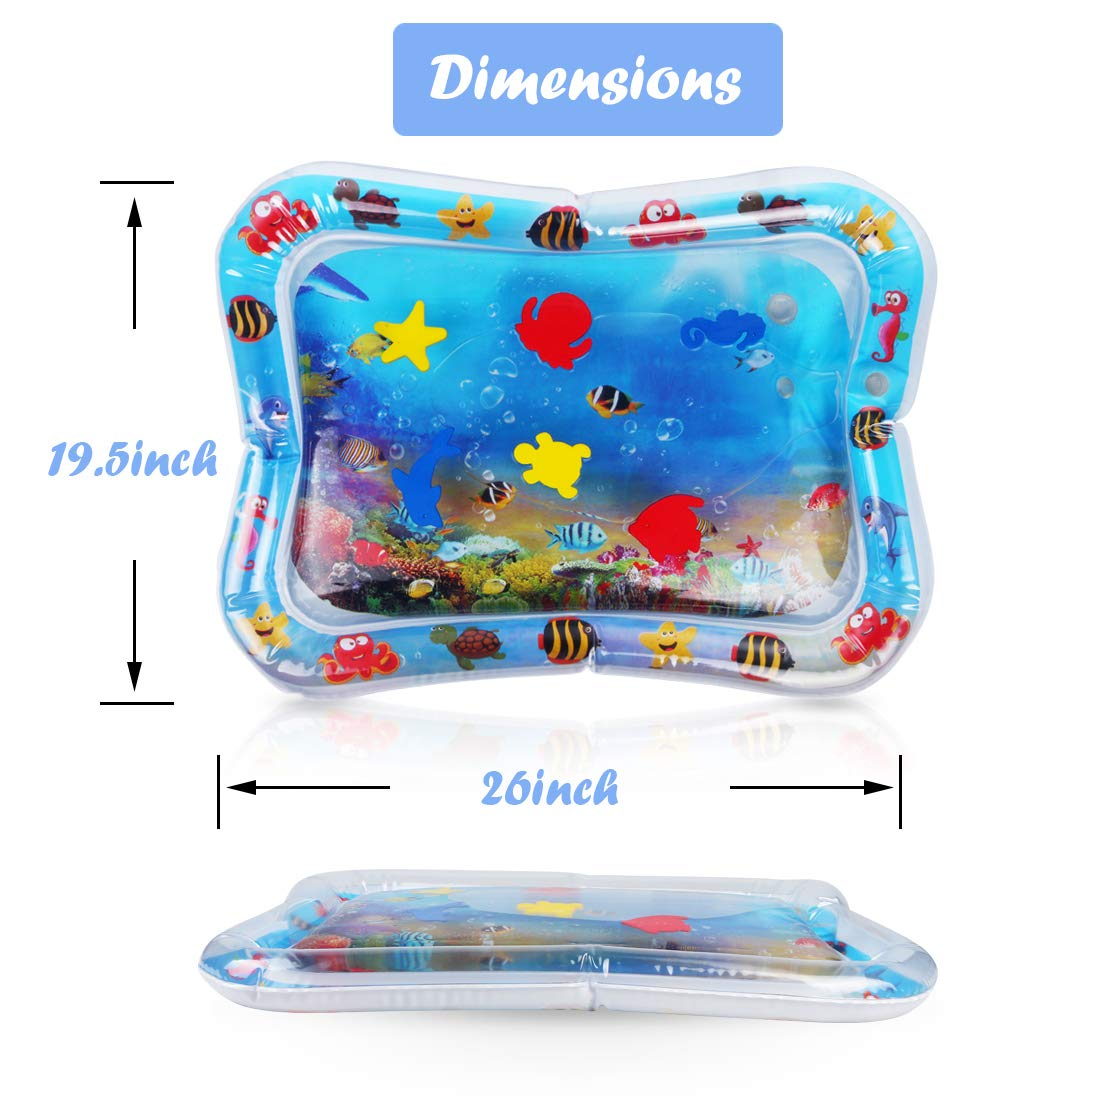 blue Fanuk Inflatable Tummy Time Baby Play Mat for Kids Infants as Fun Time Play Activity Center Your Babys Stimulation Growth